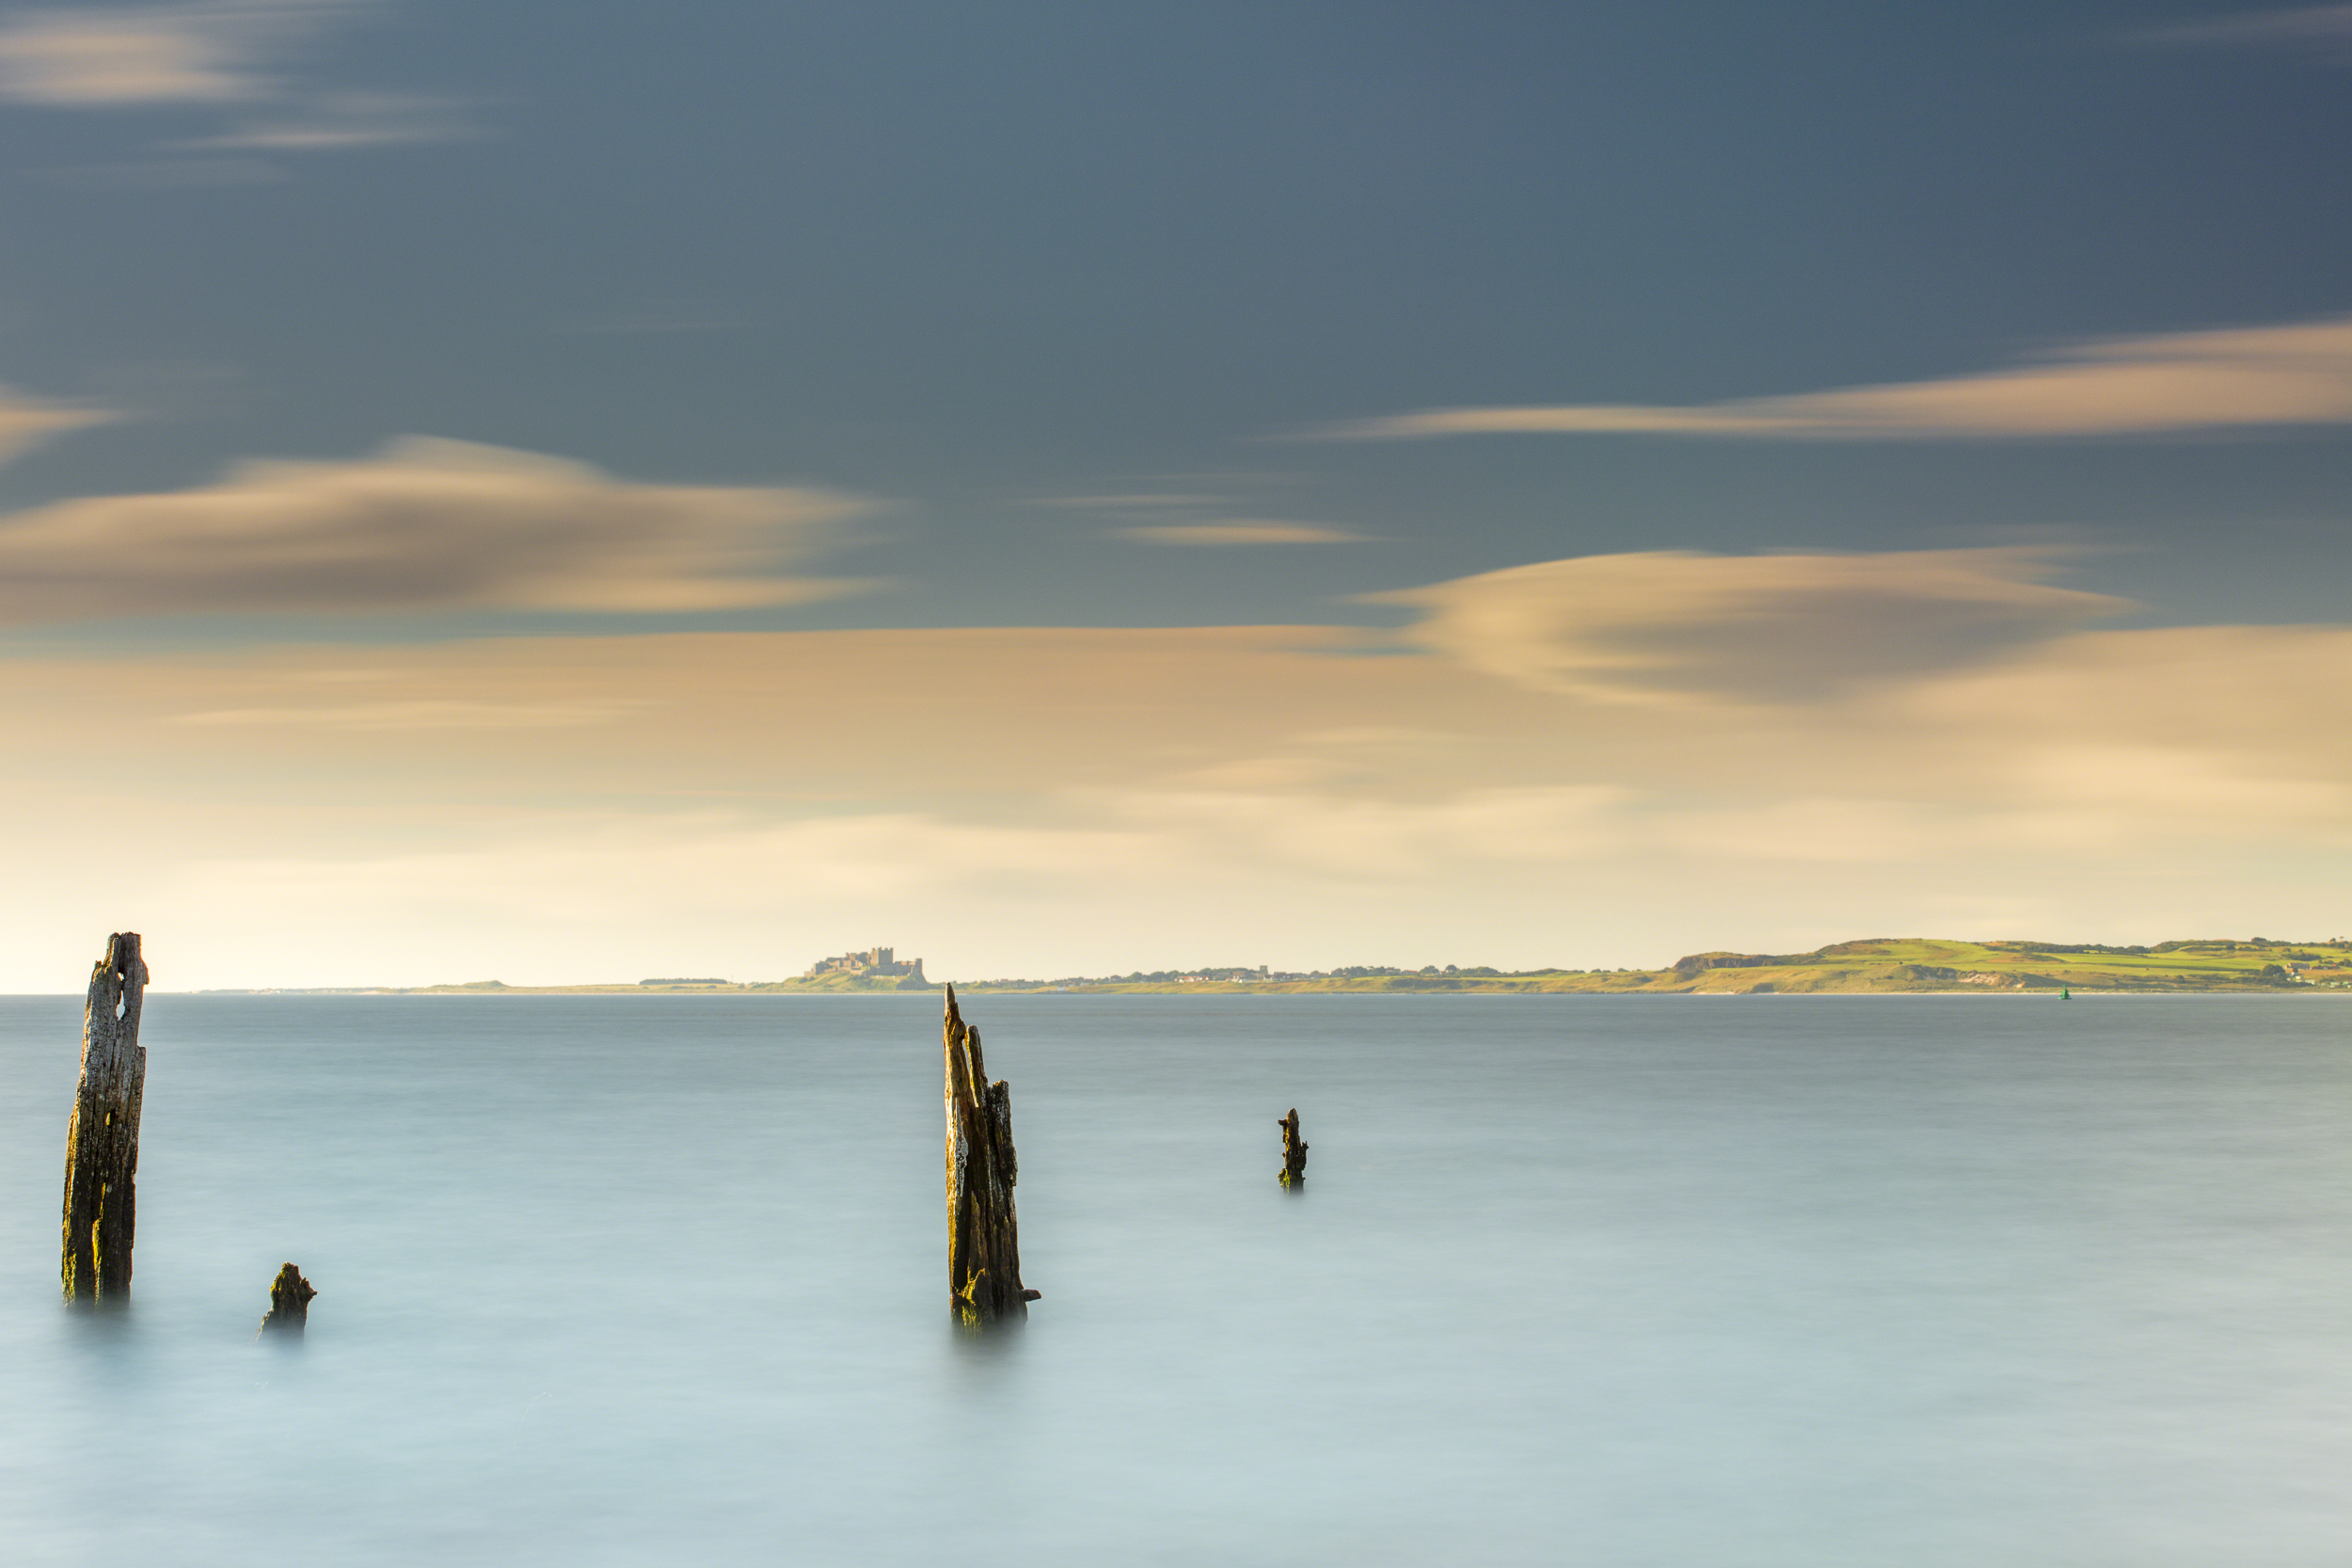 Wooden Jetty Remains - Holy Island 07:36 29th July 2017